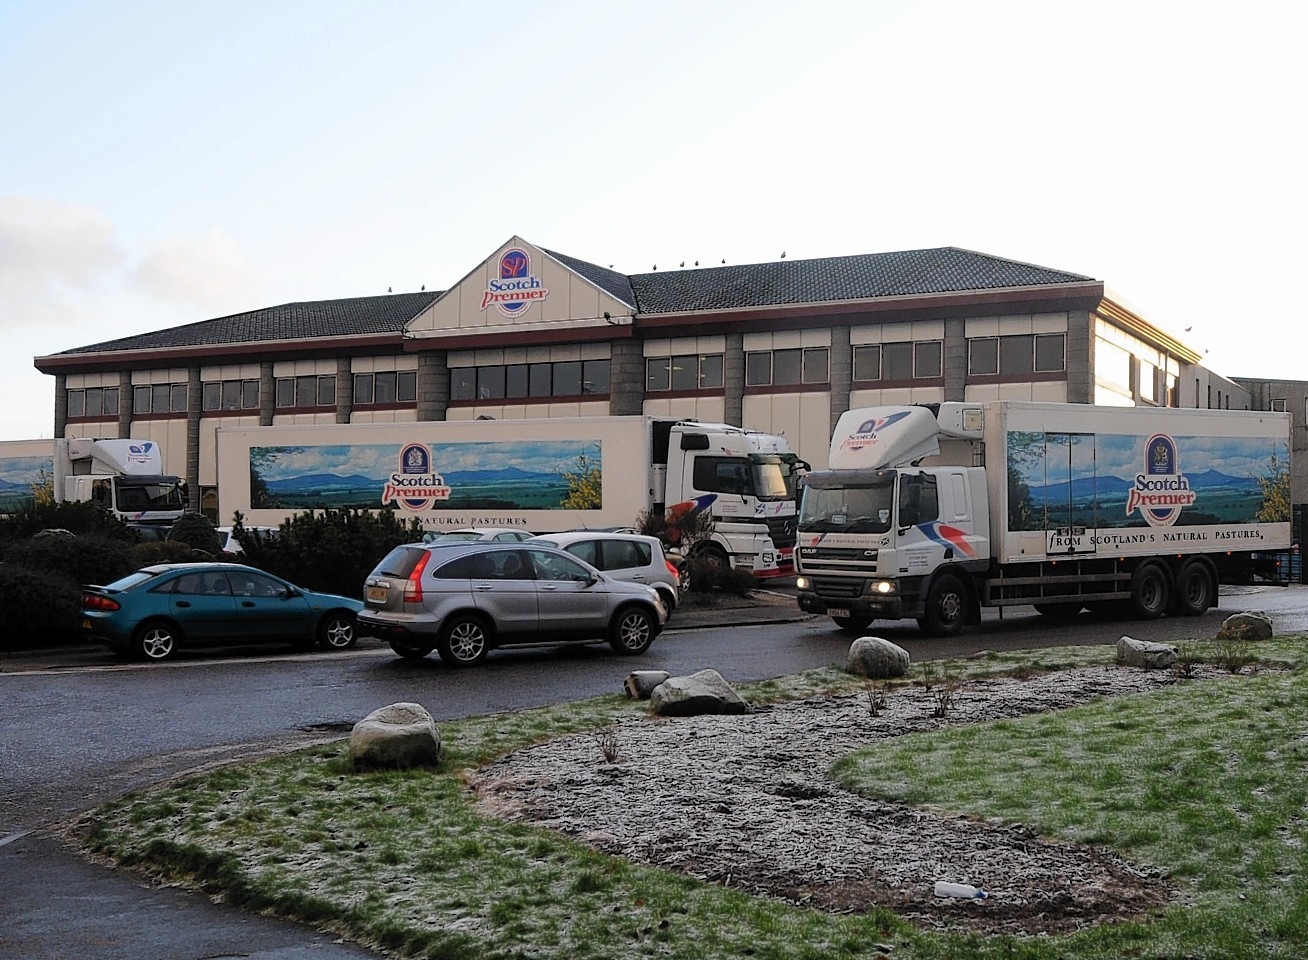 The Garioch area committee yesterday granted planning permission in principle to ANM Group Ltd's plans for the Scotch Premier Meat Ltd site on Inverurie's Old Chapel Road.